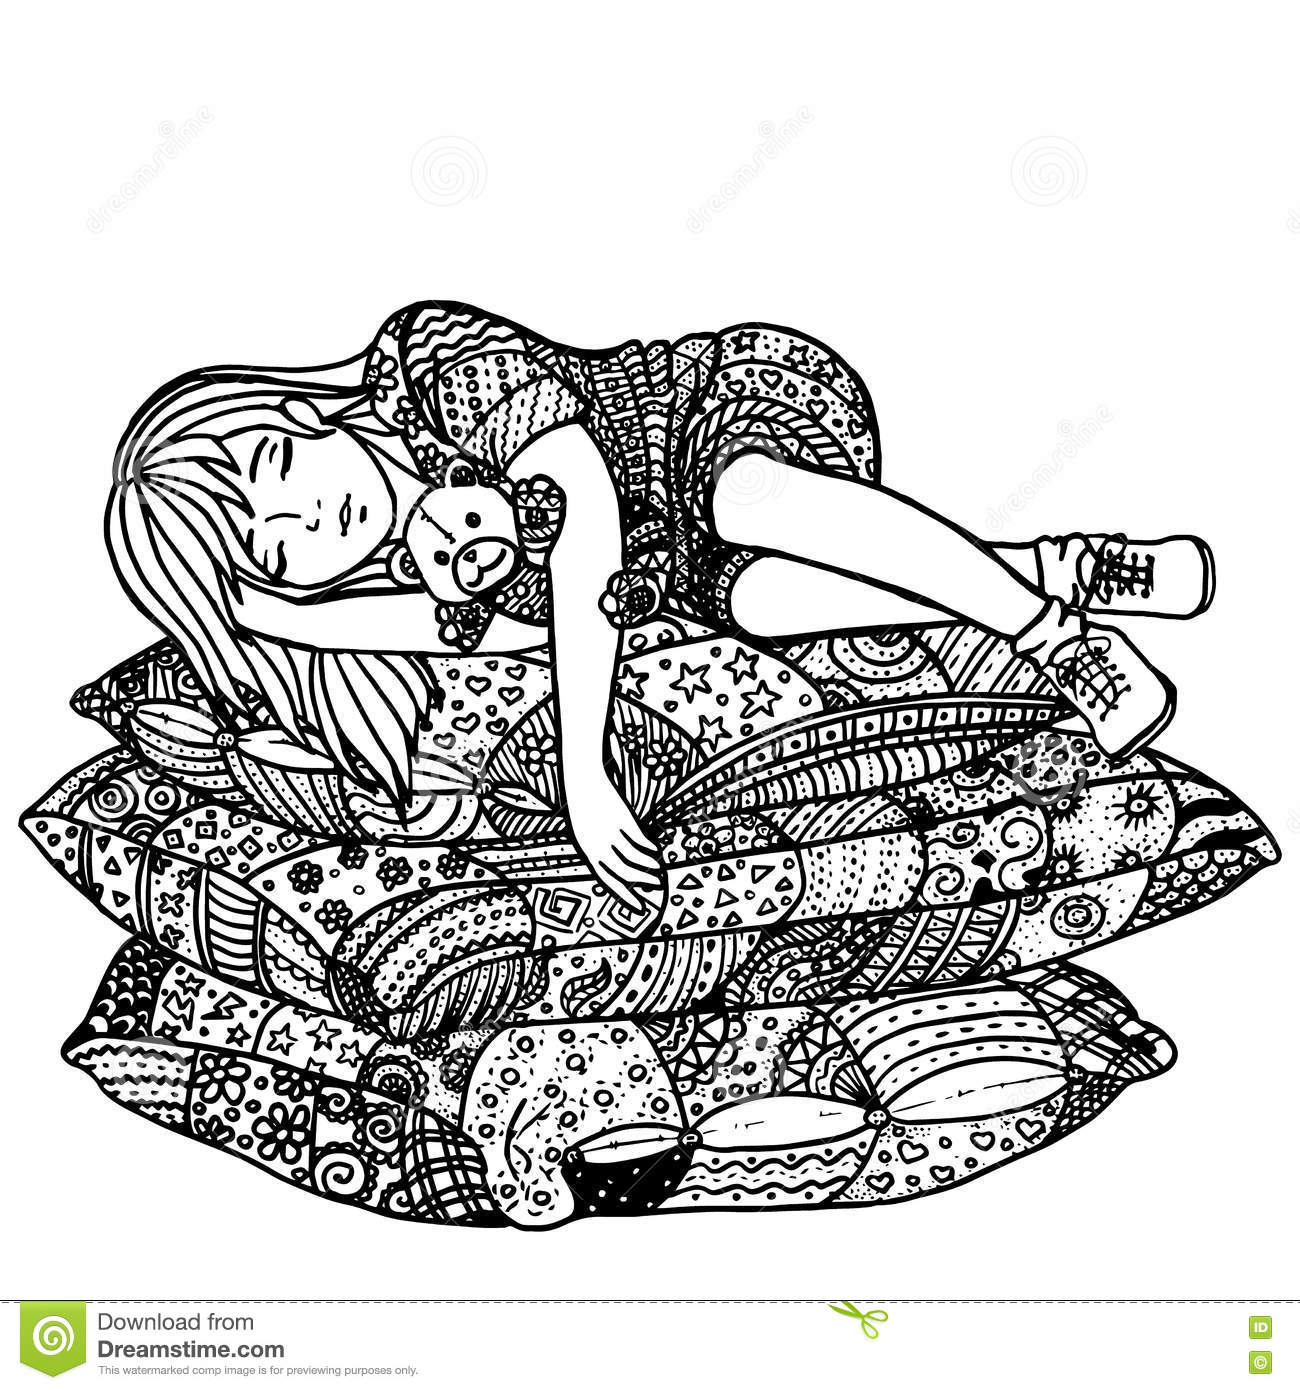 Sleeping Girl On Pillows Pattern For Adult Coloring Book Hand Drawn Design With Ethnic